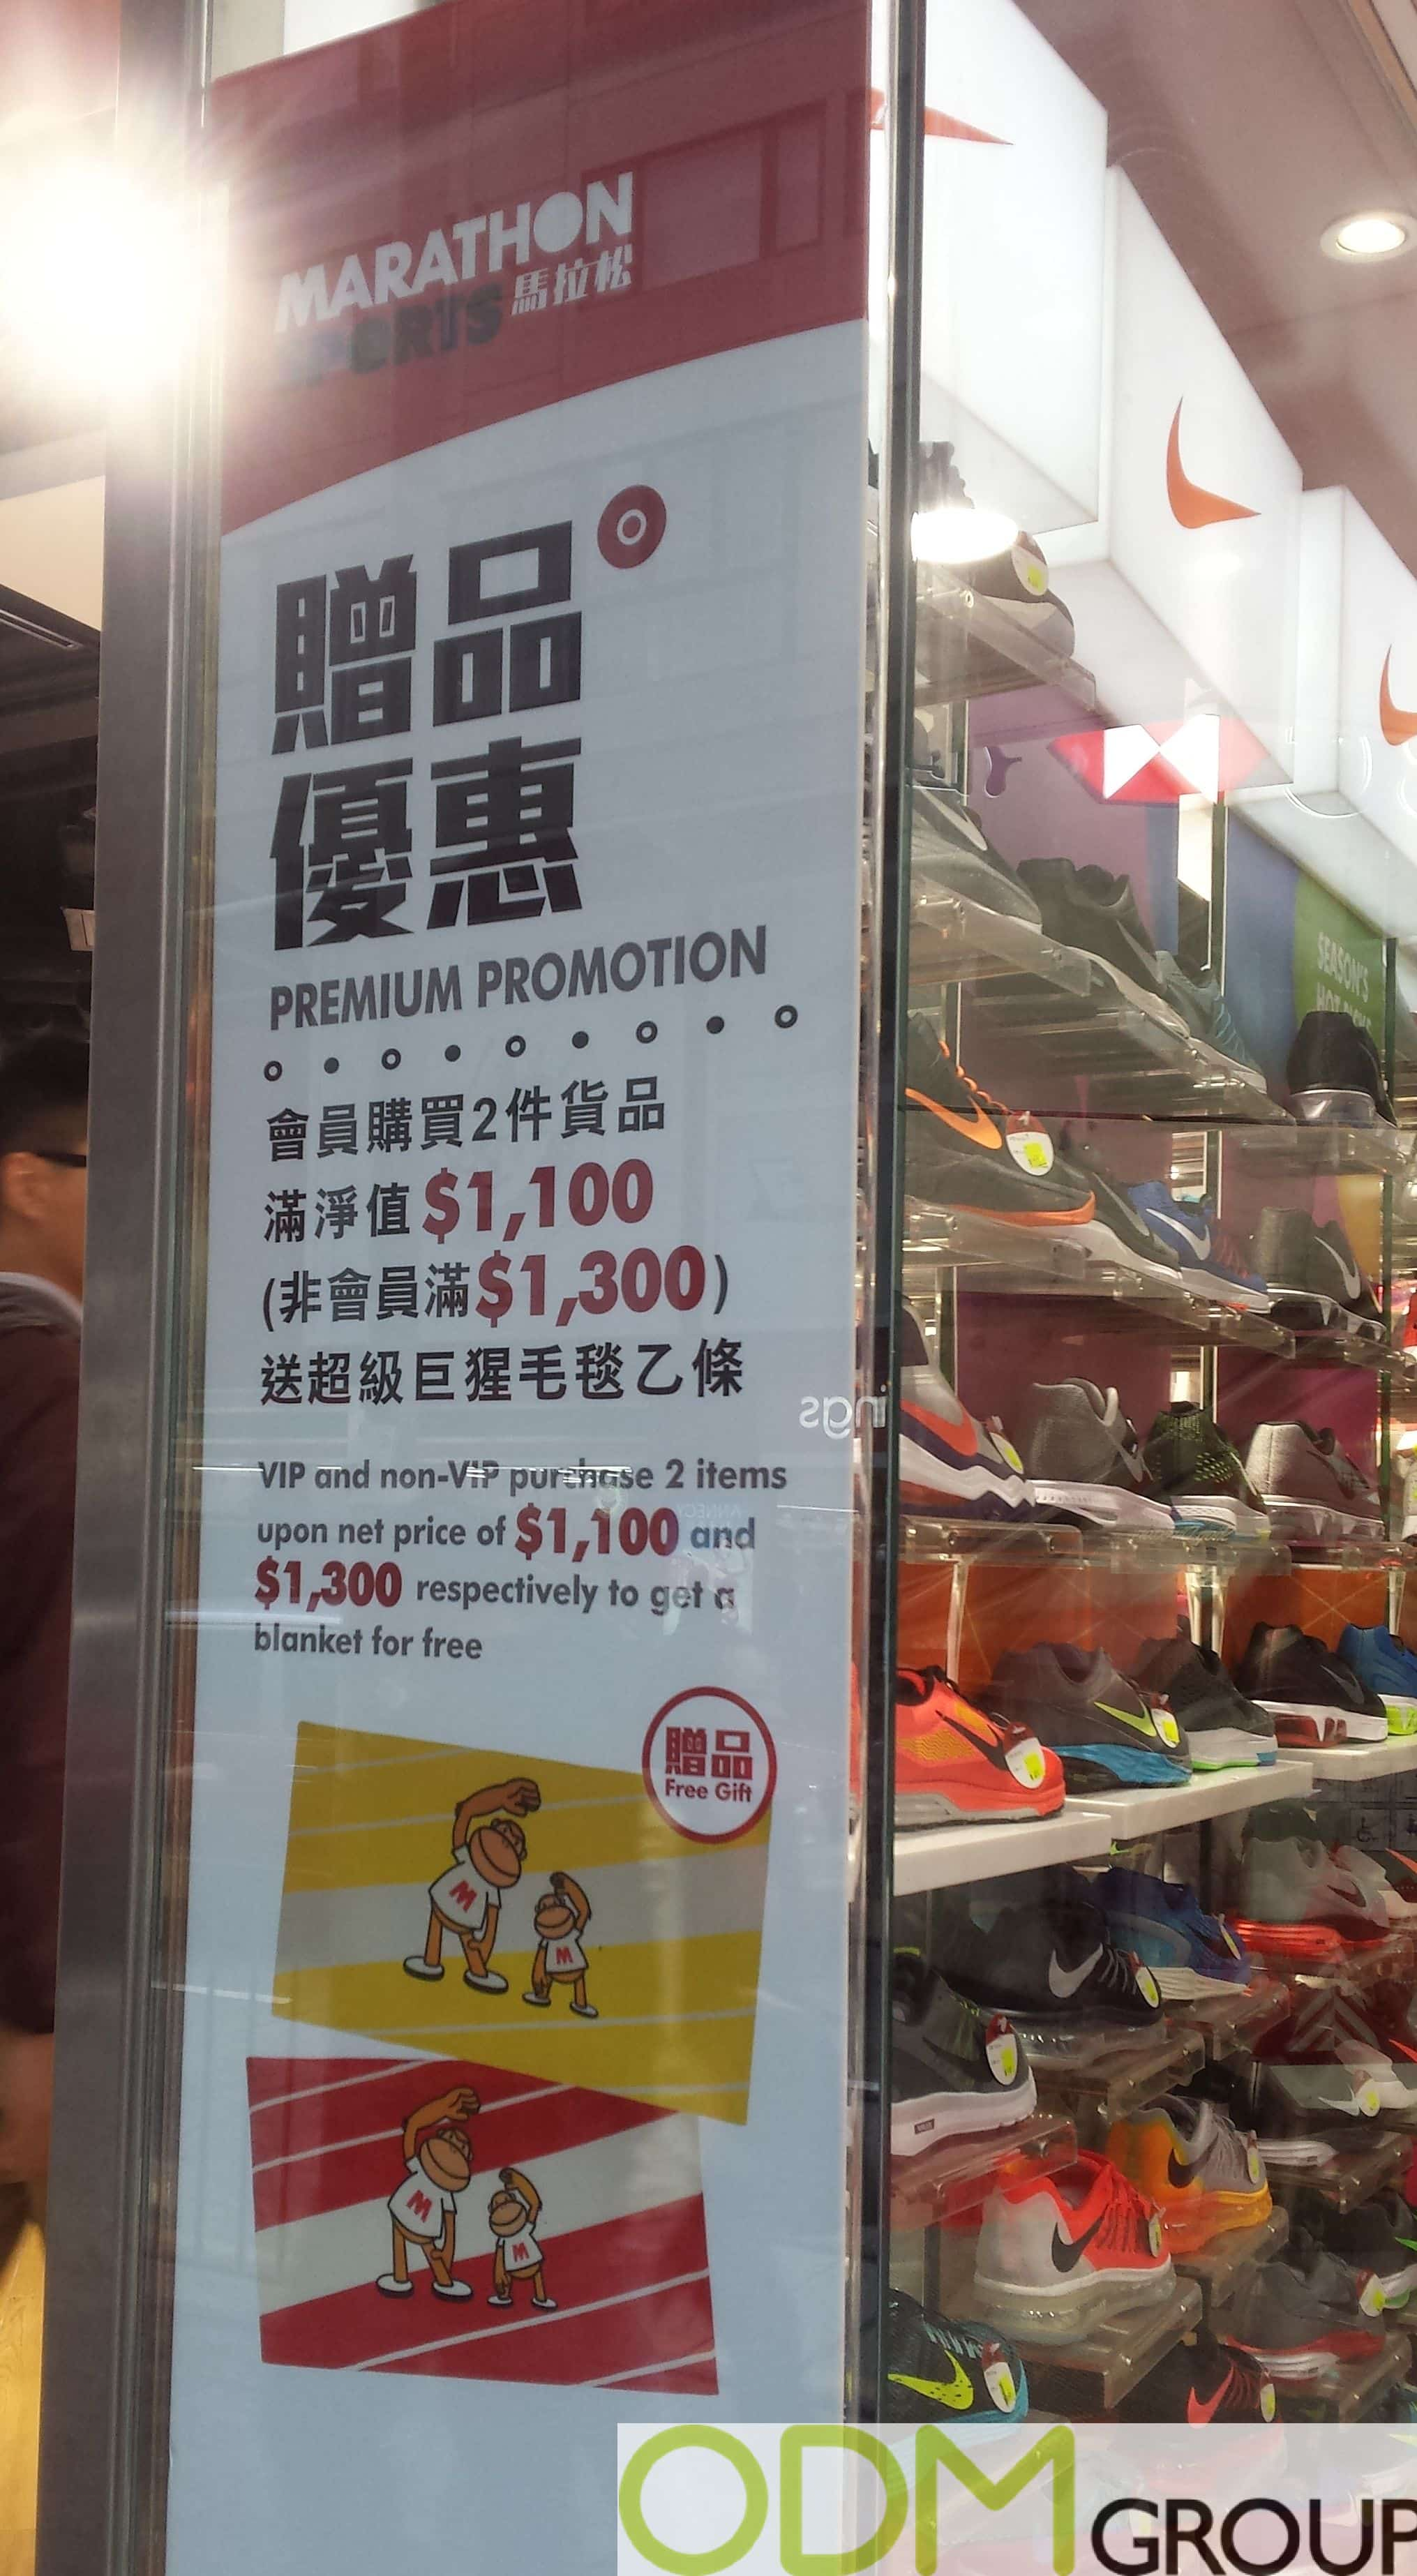 Marathon Sports offer Free Towel as Purchase Gift